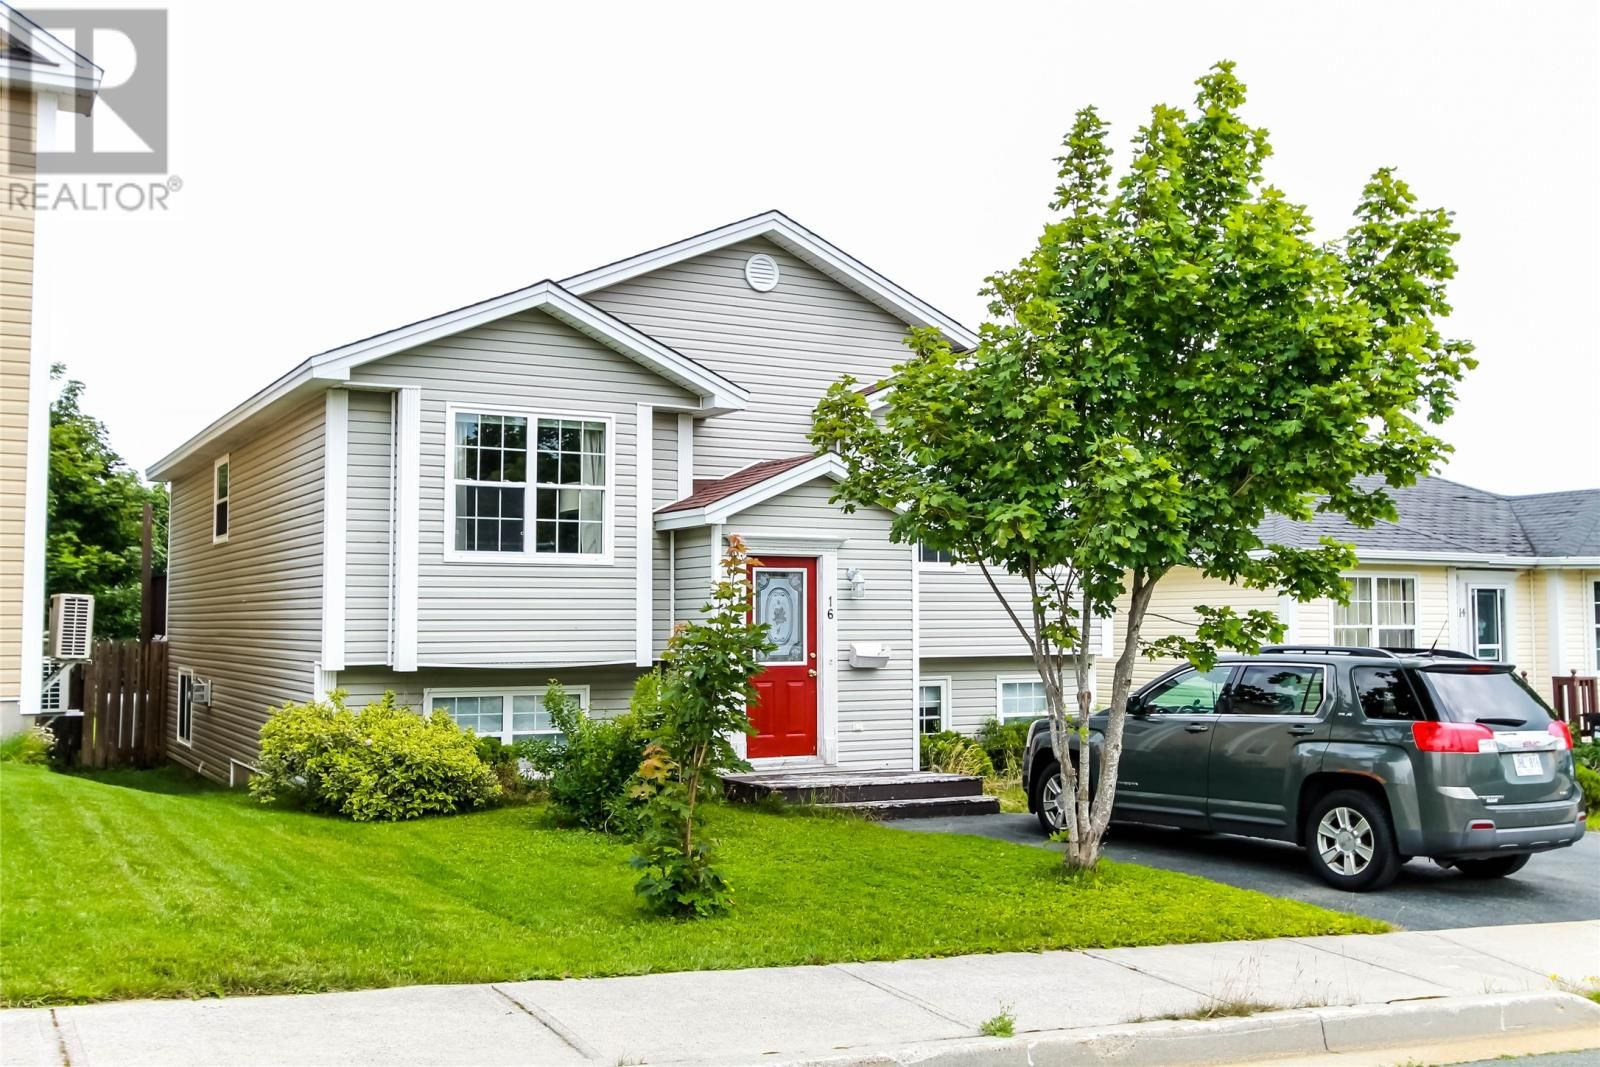 Main Photo: 16 Crambrae Street in St. Johns: House for sale : MLS®# 1235779